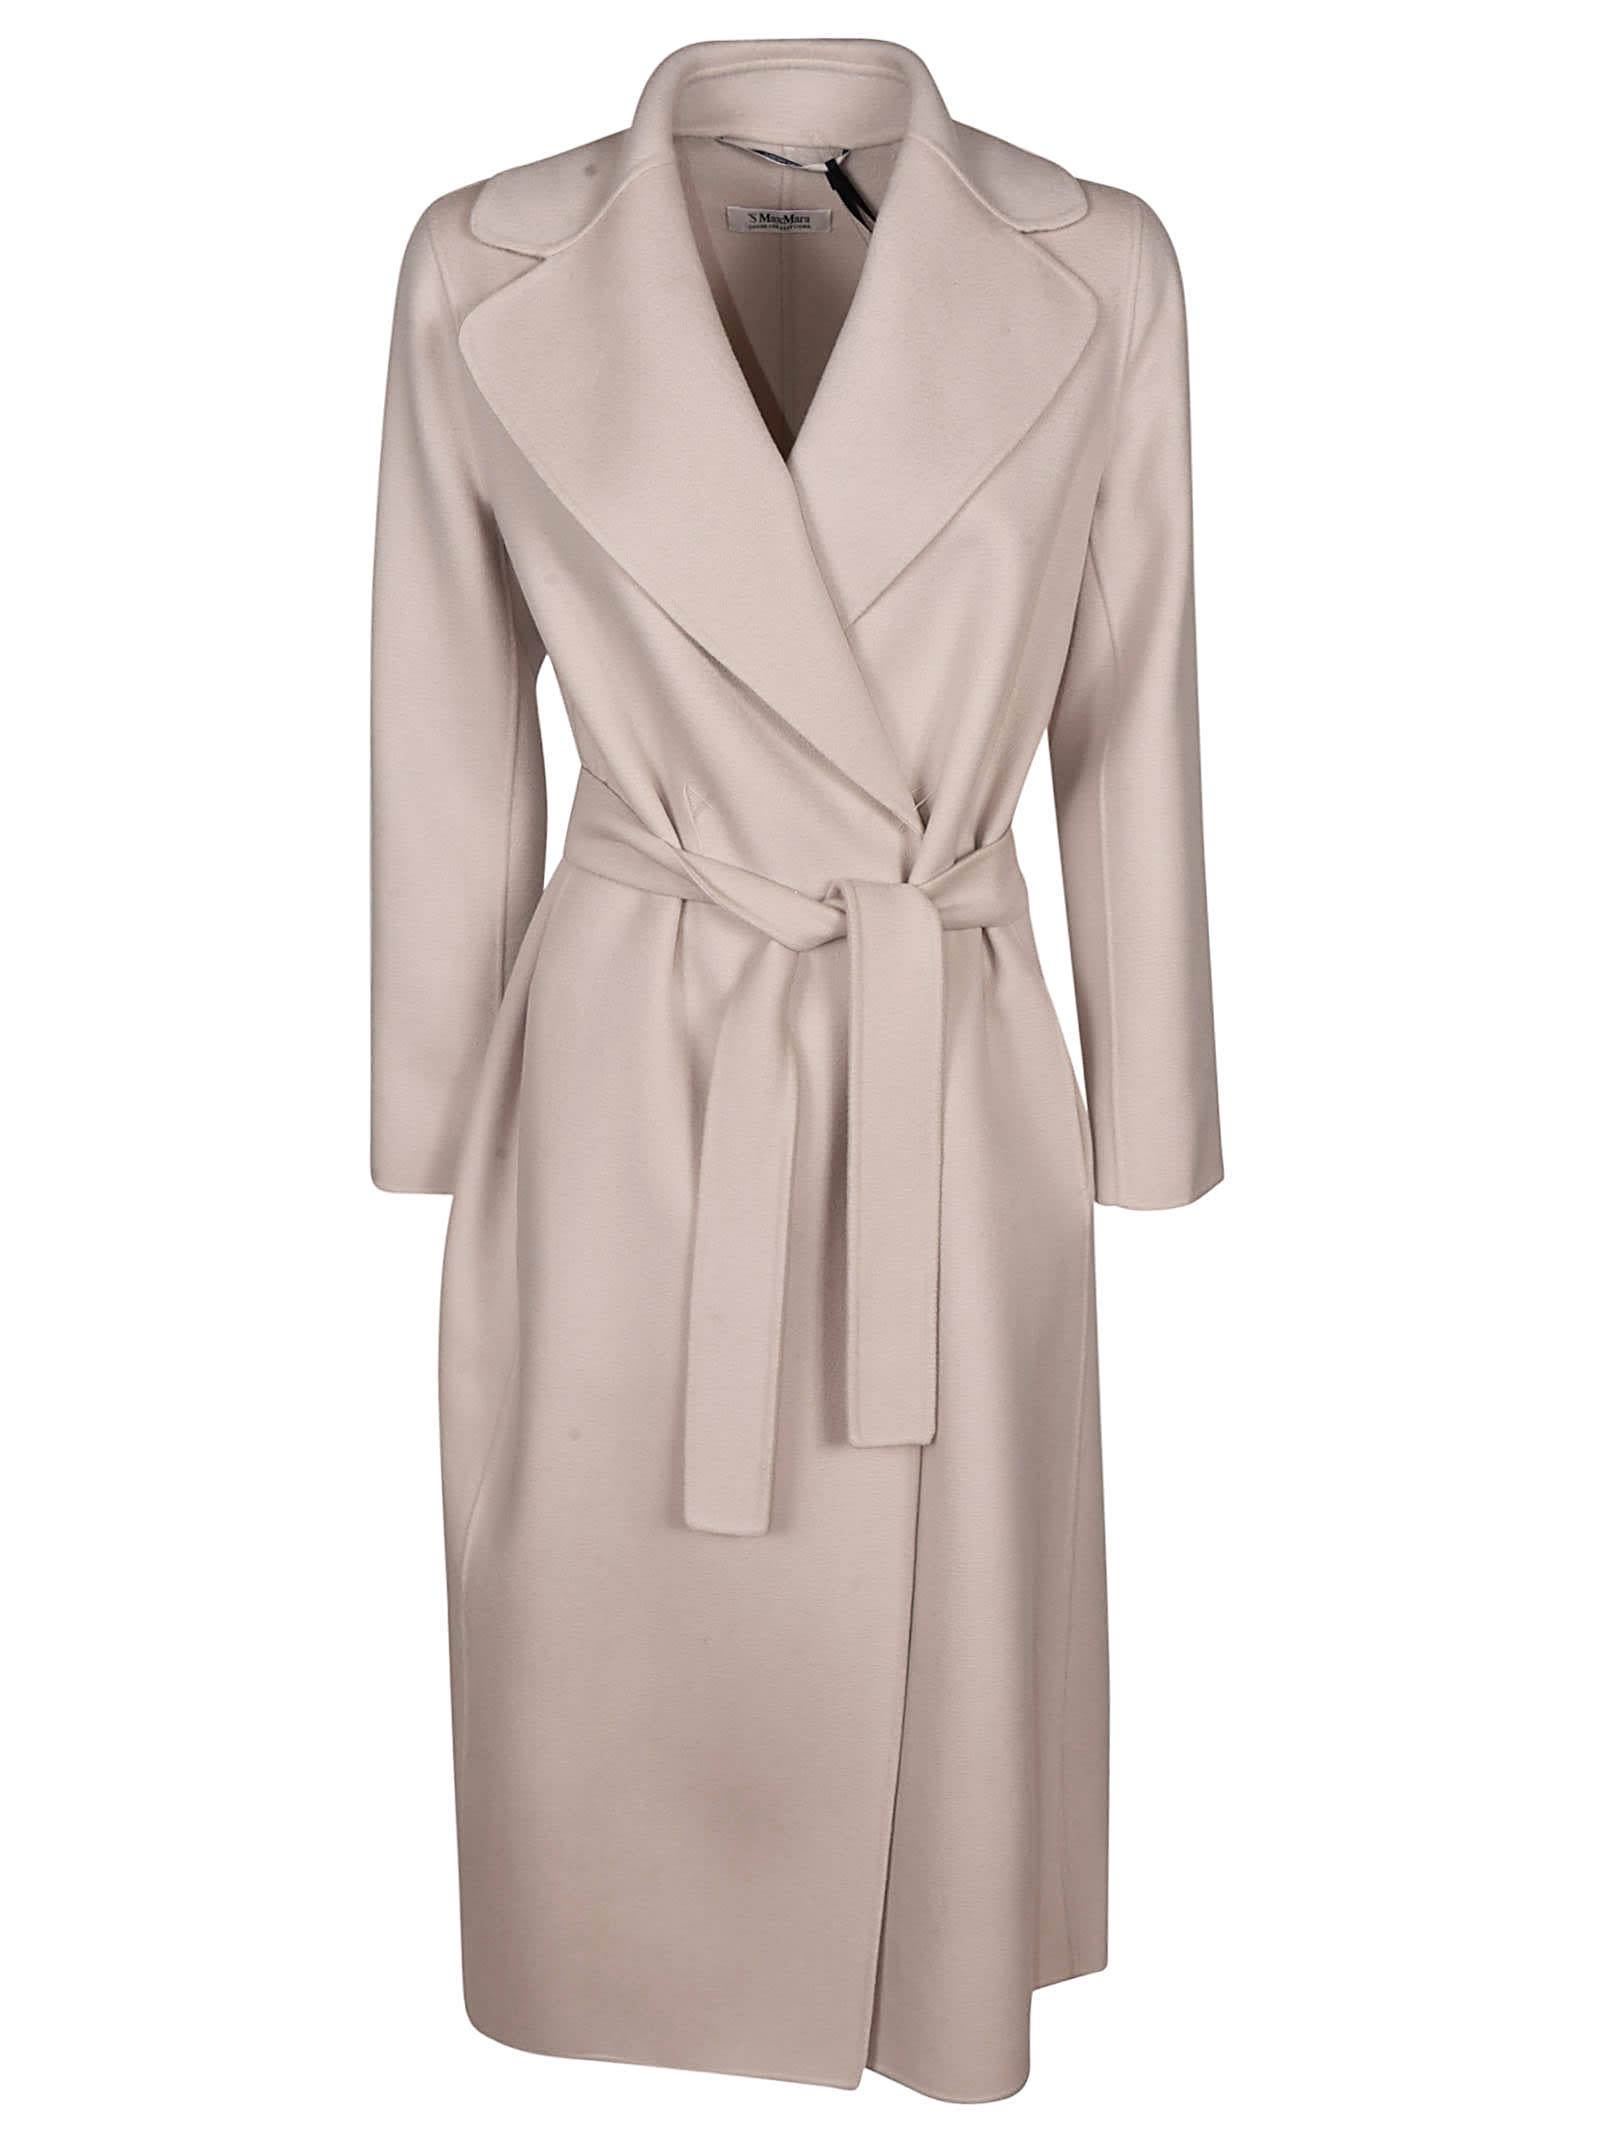 Max Mara Studio Belt-tied Coat